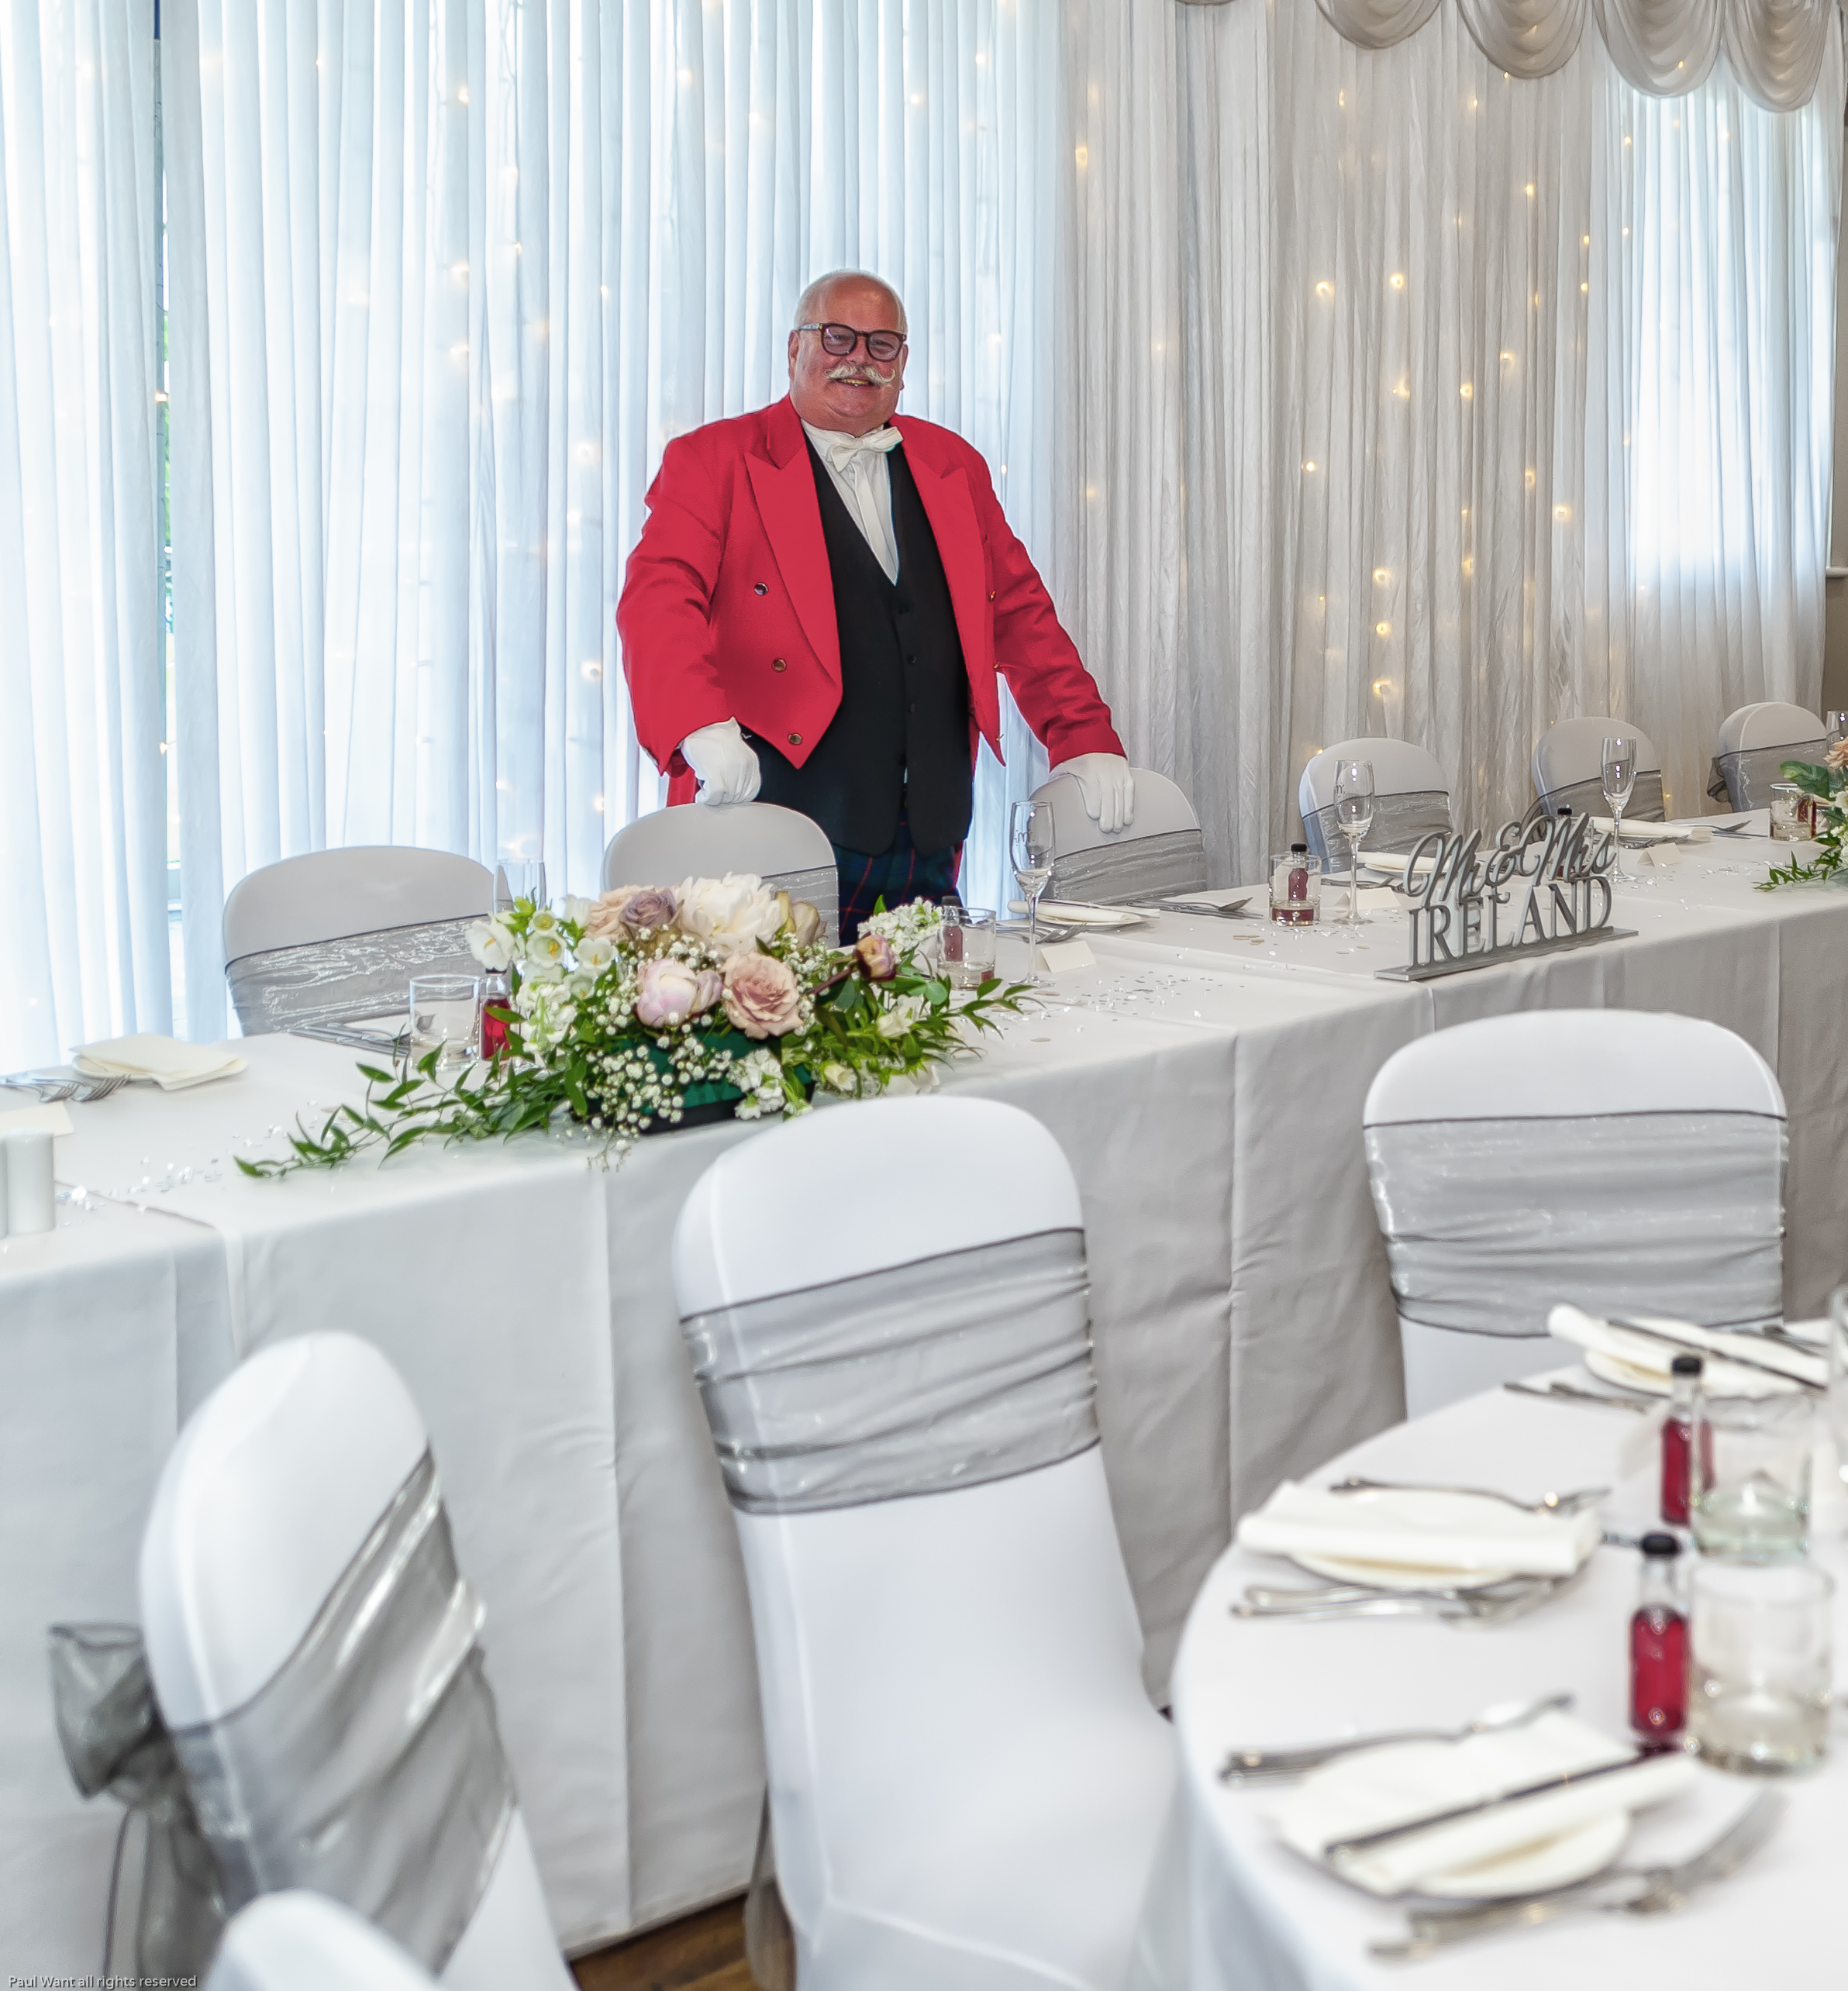 The Kentdale Suite - Buffet or formal dining, live music or disco dancing - our spectacular event suite can be arranged just for you. You'll love our state-of-the-art sound system and access to the large covered balcony.